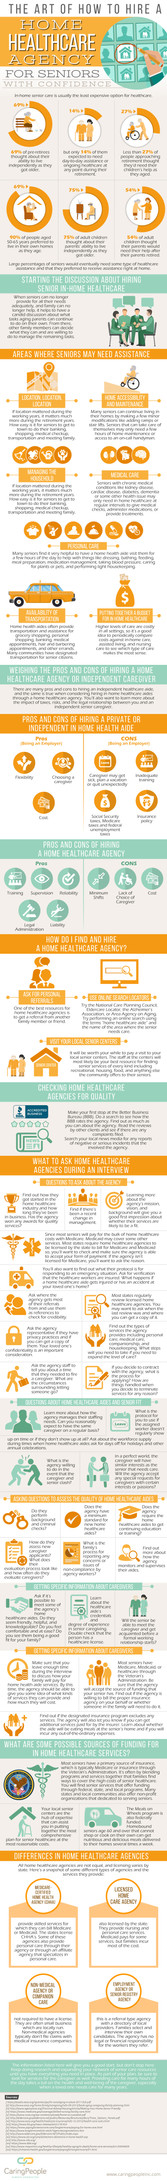 The Art of How to Hire a Home Healthcare